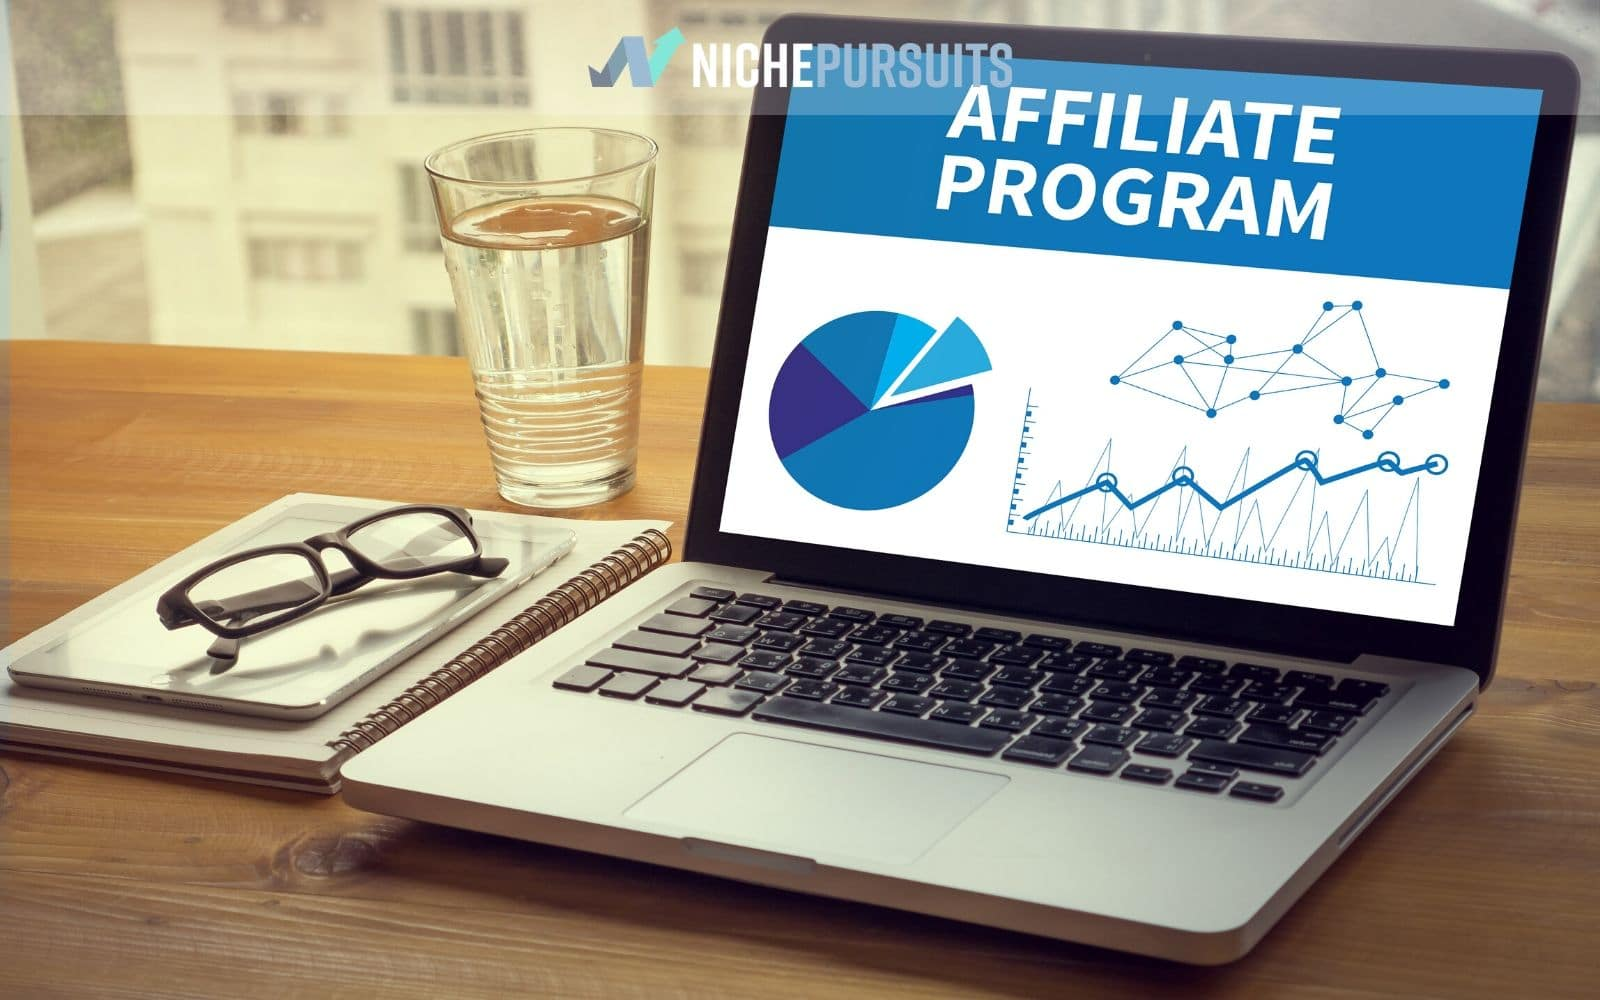 Best Laptop for Business Affiliate Marketing